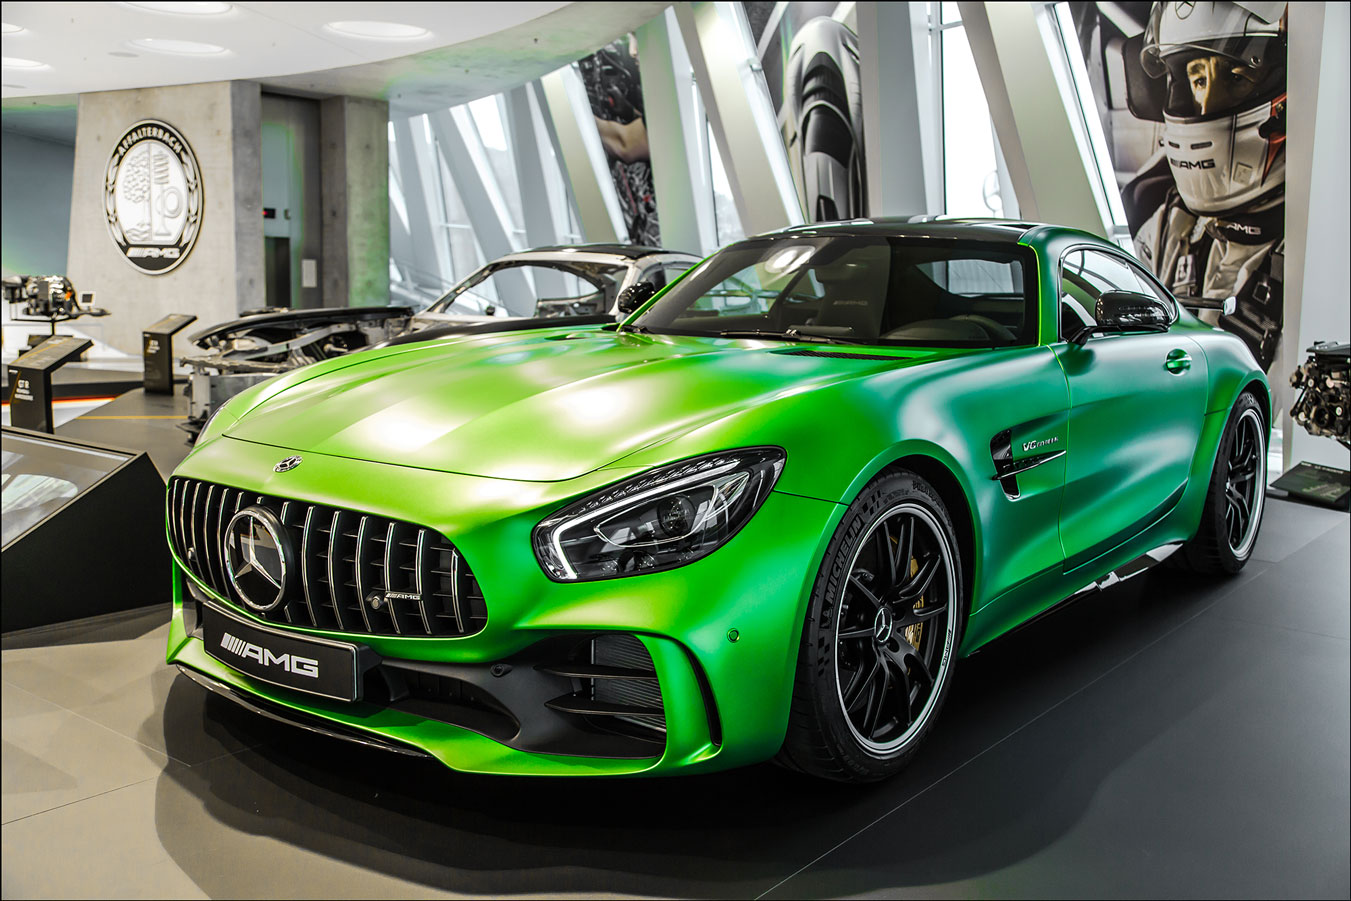 mercedes benz amg gtr 2018 v8 bi turbo art print. Black Bedroom Furniture Sets. Home Design Ideas